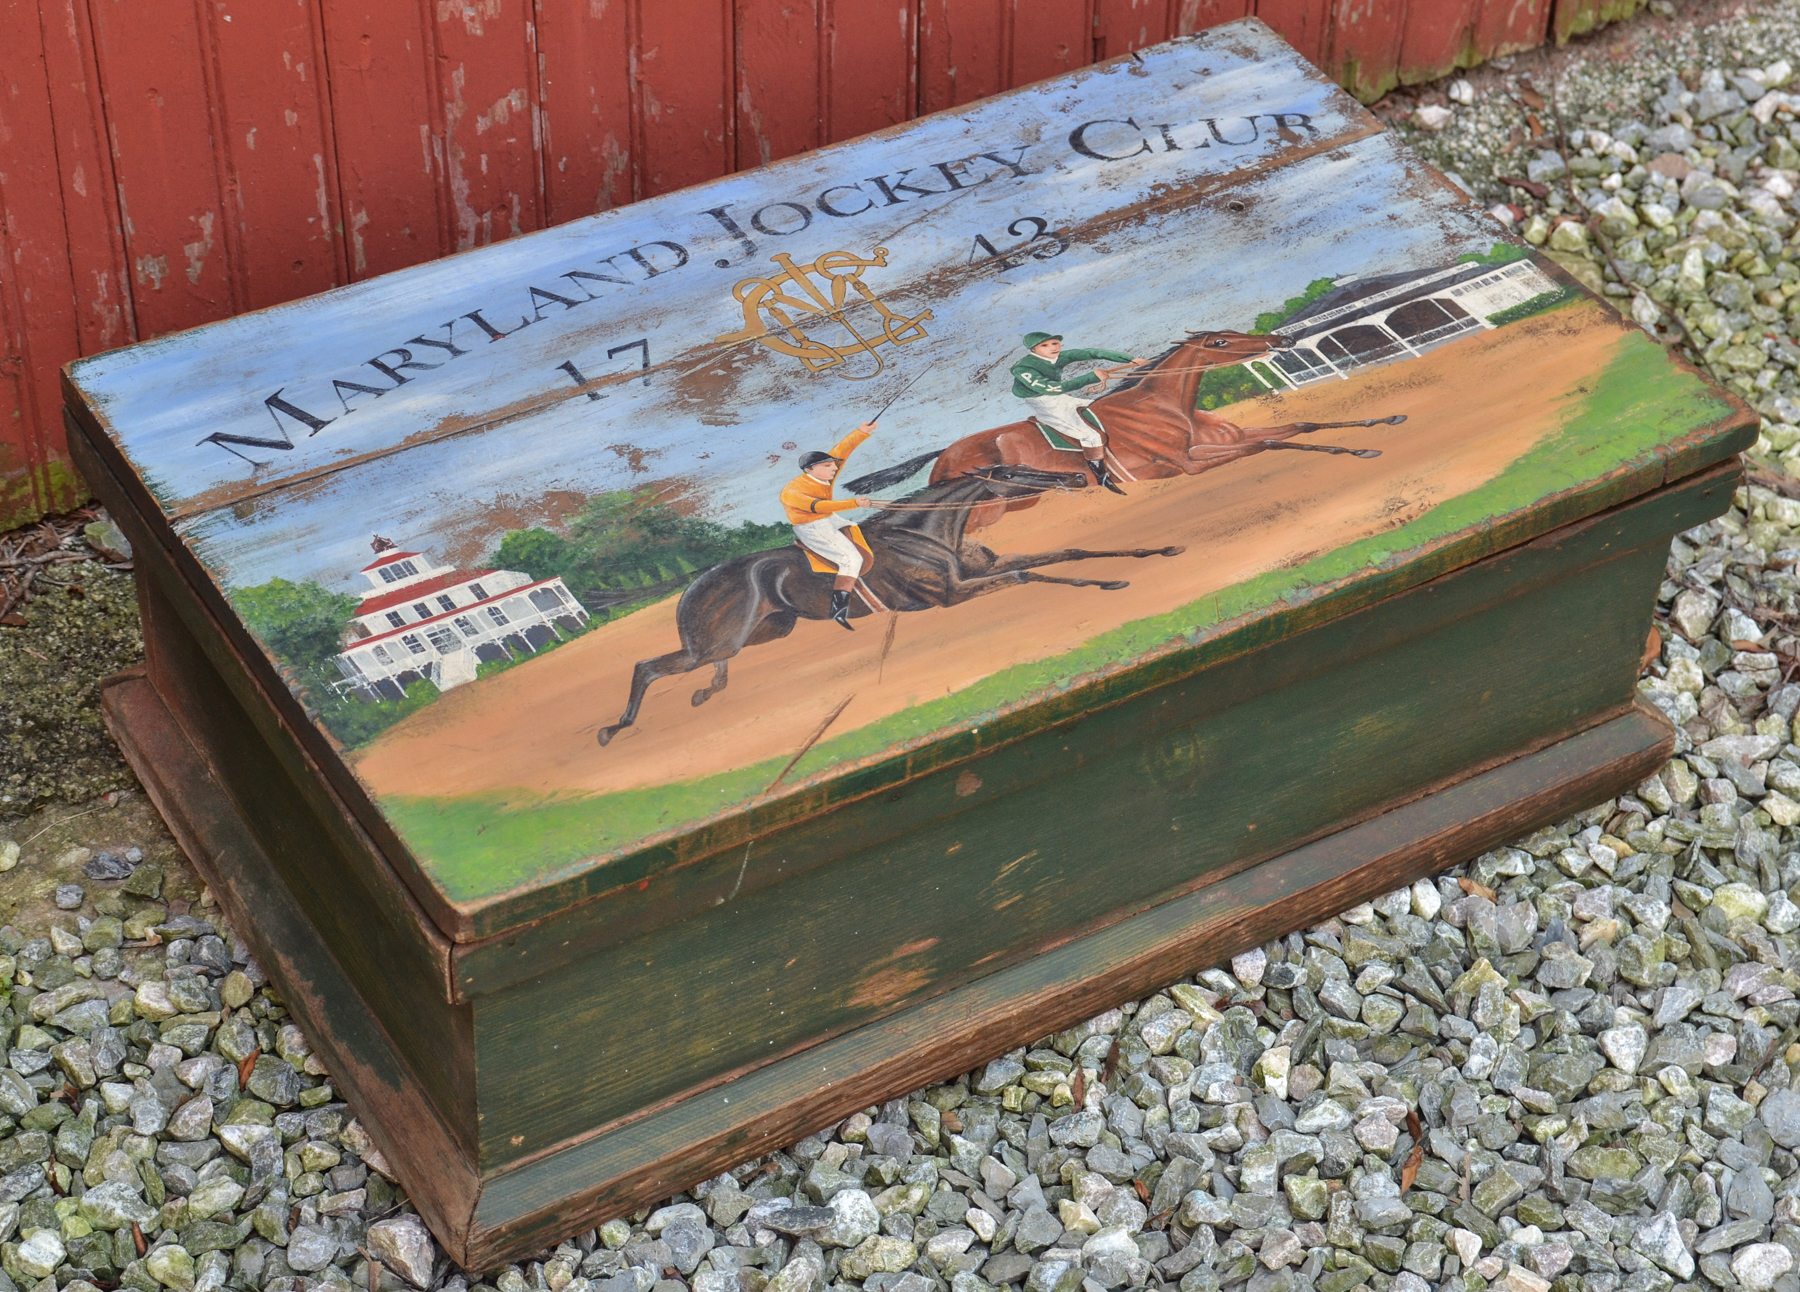 Maryland Jockey Club Box